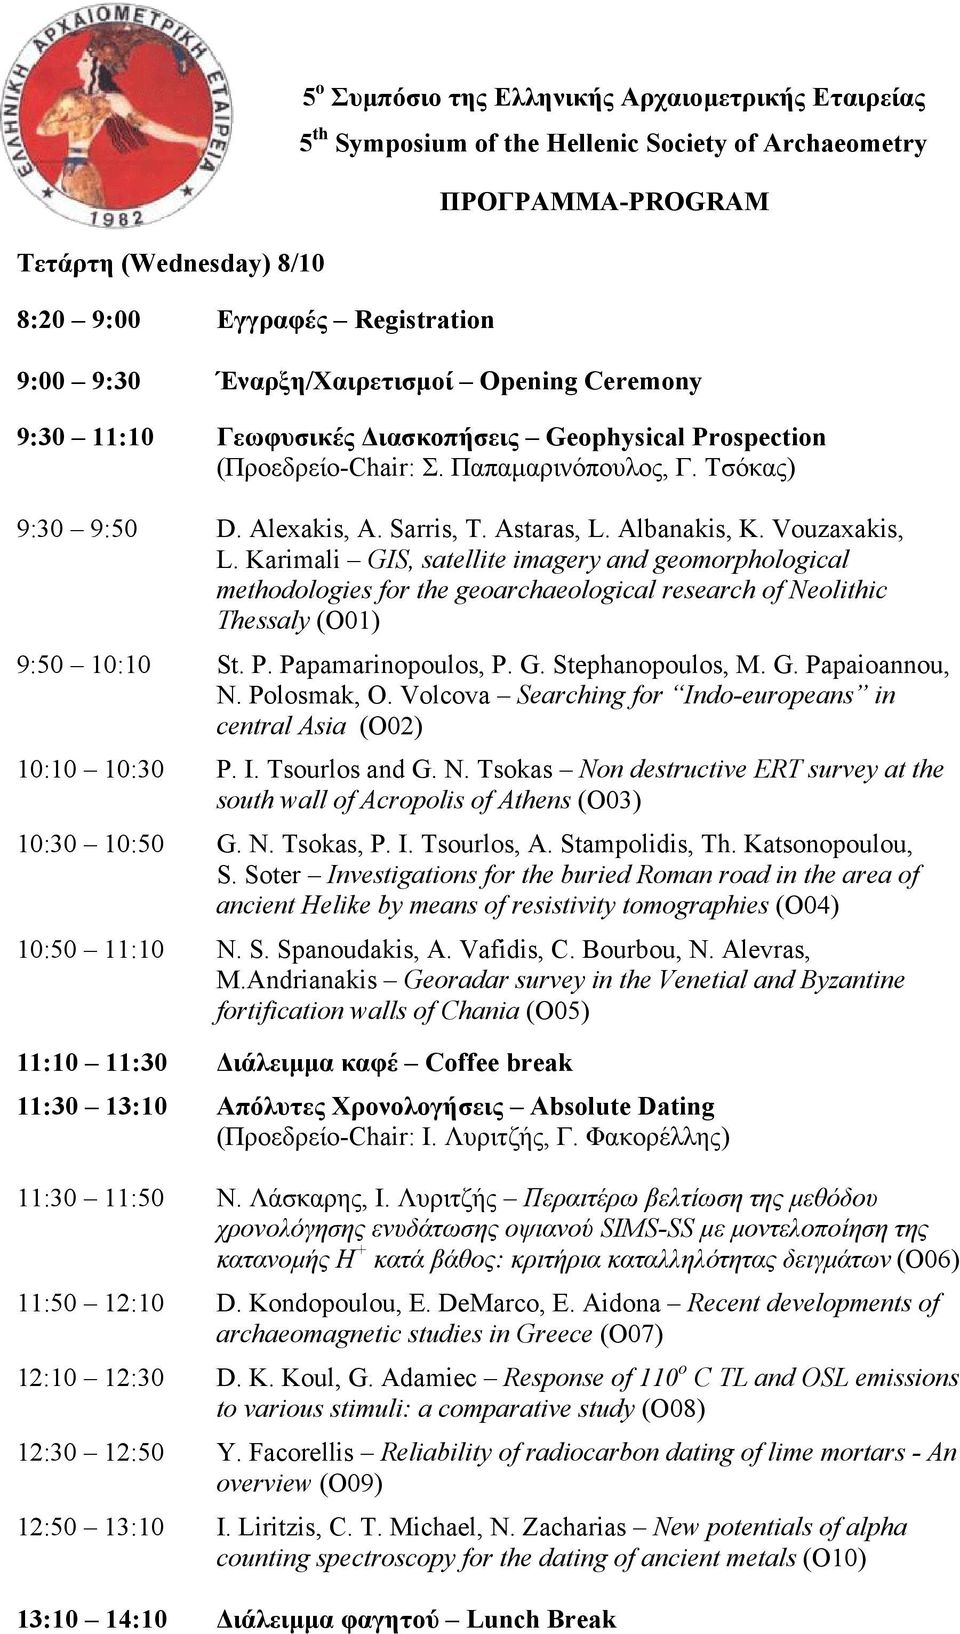 Albanakis, K. Vouzaxakis, L. Karimali GIS, satellite imagery and geomorphological methodologies for the geoarchaeological research of Neolithic Thessaly (O01) 9:50 10:10 St. P. Papamarinopoulos, P. G. Stephanopoulos, M.